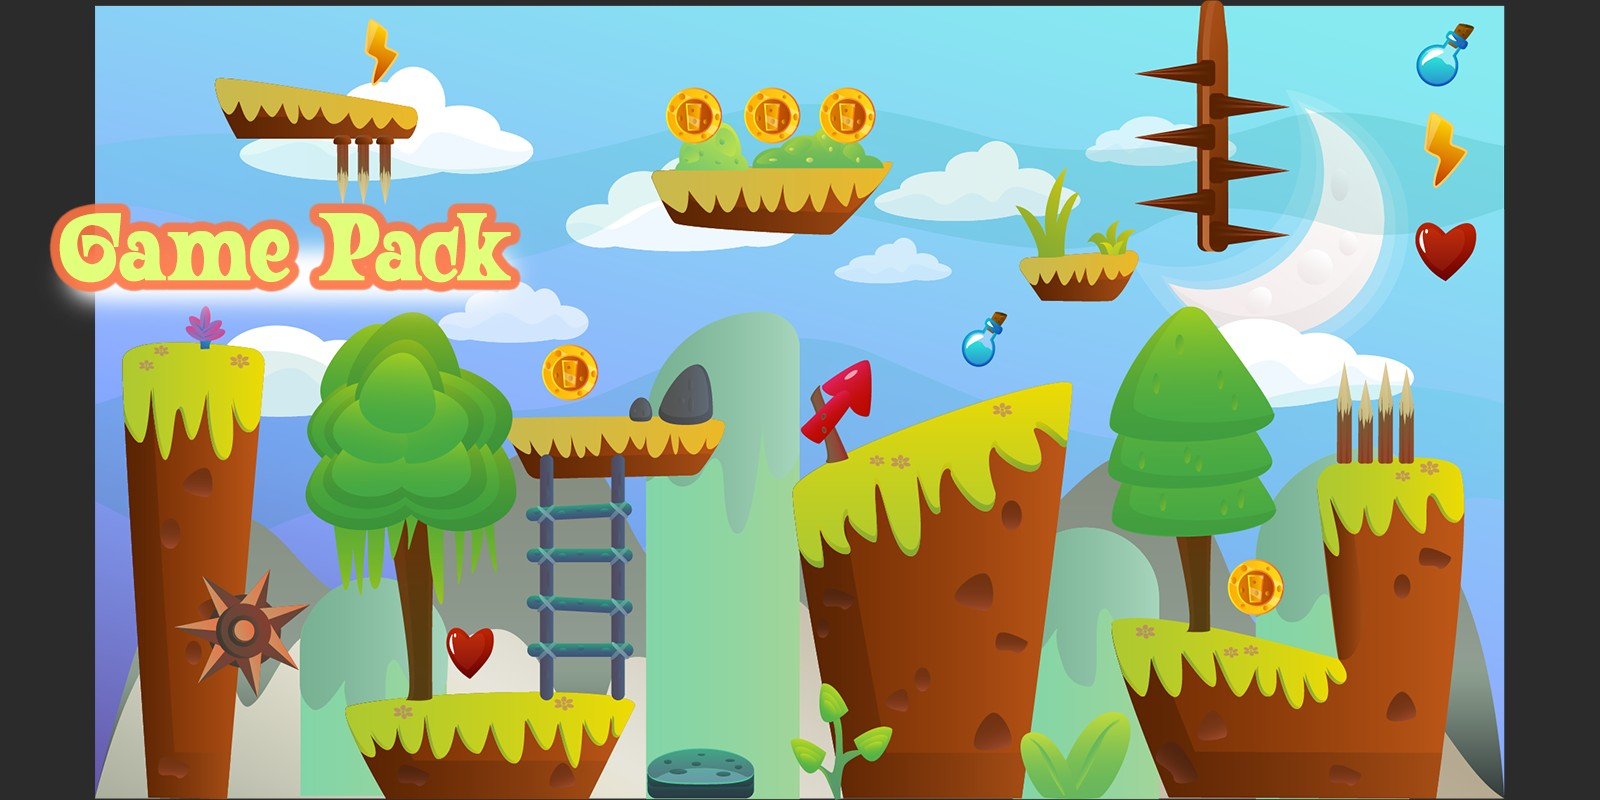 Game Pack Run And Jump Assets 1